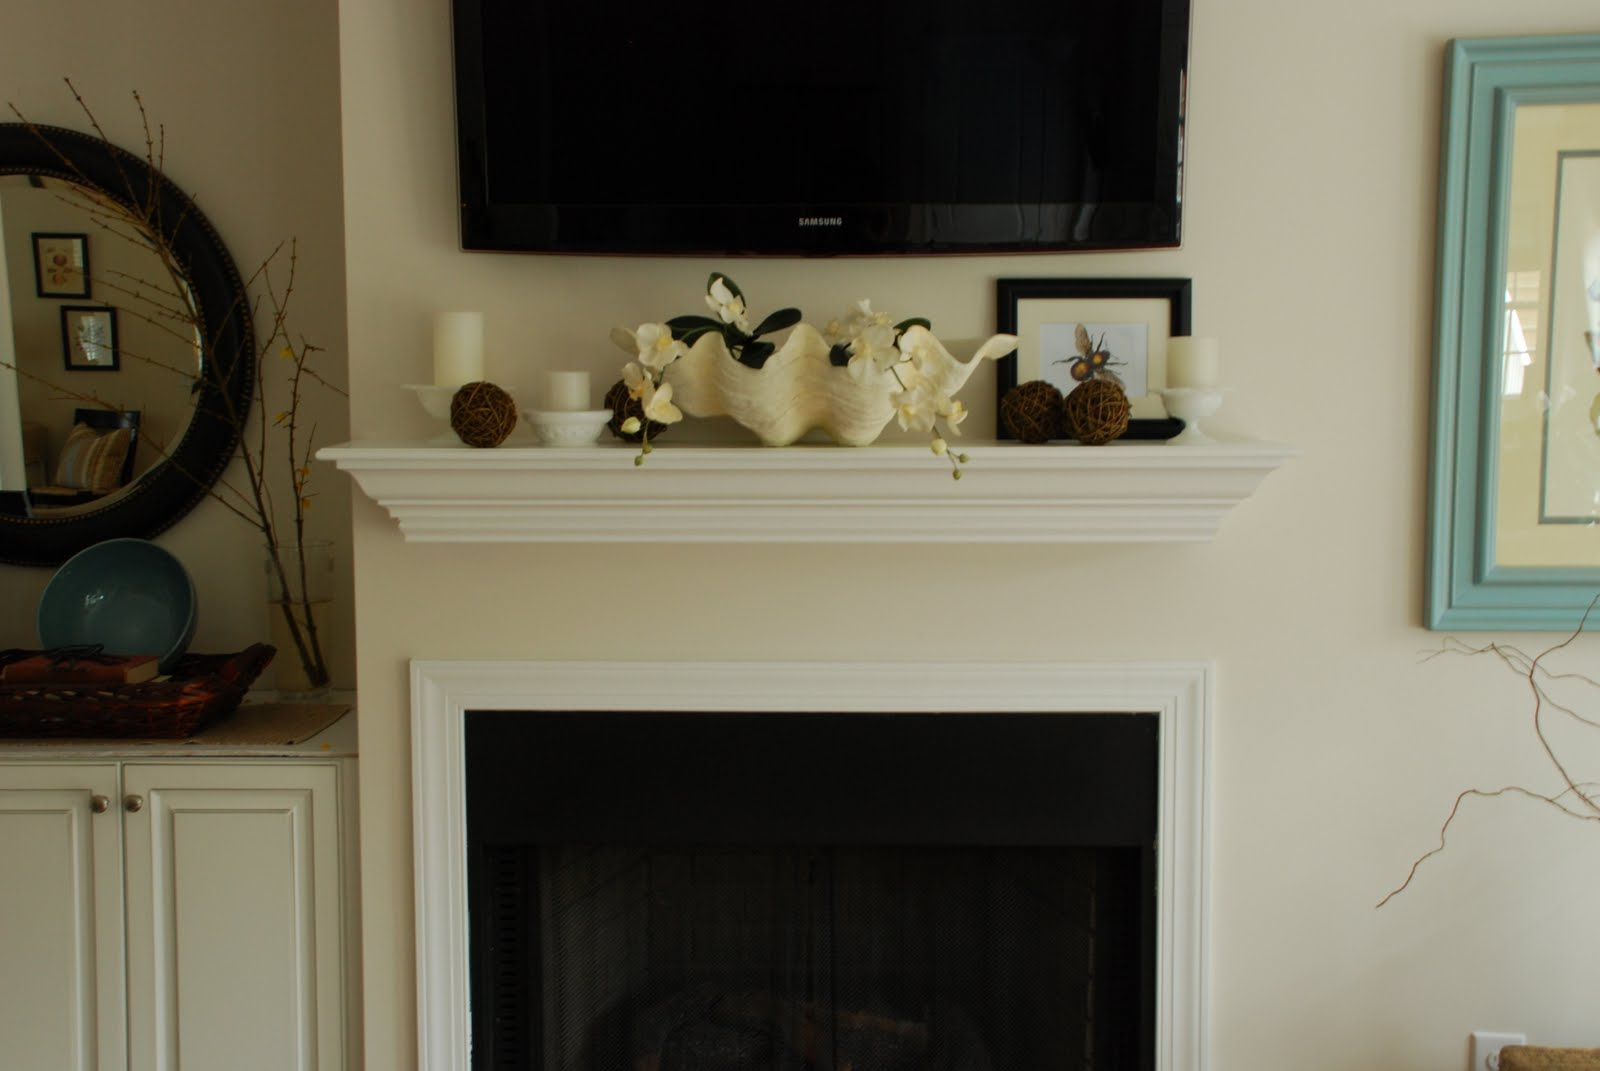 Christmas mantel decorations under tv - Decorating A Mantel With A Tv